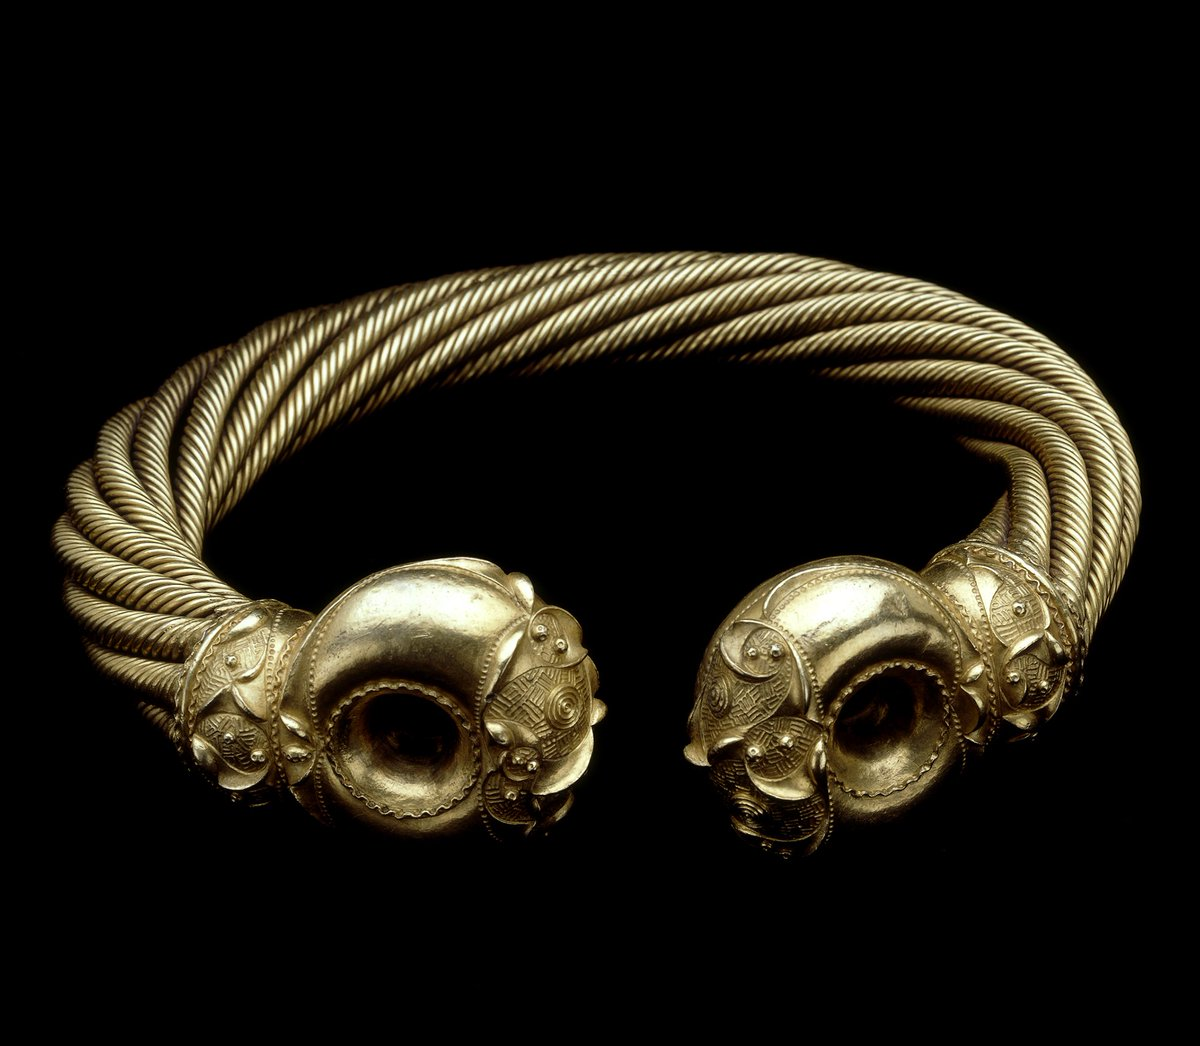 This Iron Age neck-ring is one of the most elaborate golden objects from ancient Britain. Known as the Snettisham Great Torc, it is made from just over a kilo of gold mixed with silver ✨  Buried around 75 BC, the torc was found in 1950 in Norfolk, England  https://t.co/9UluR1Oz82